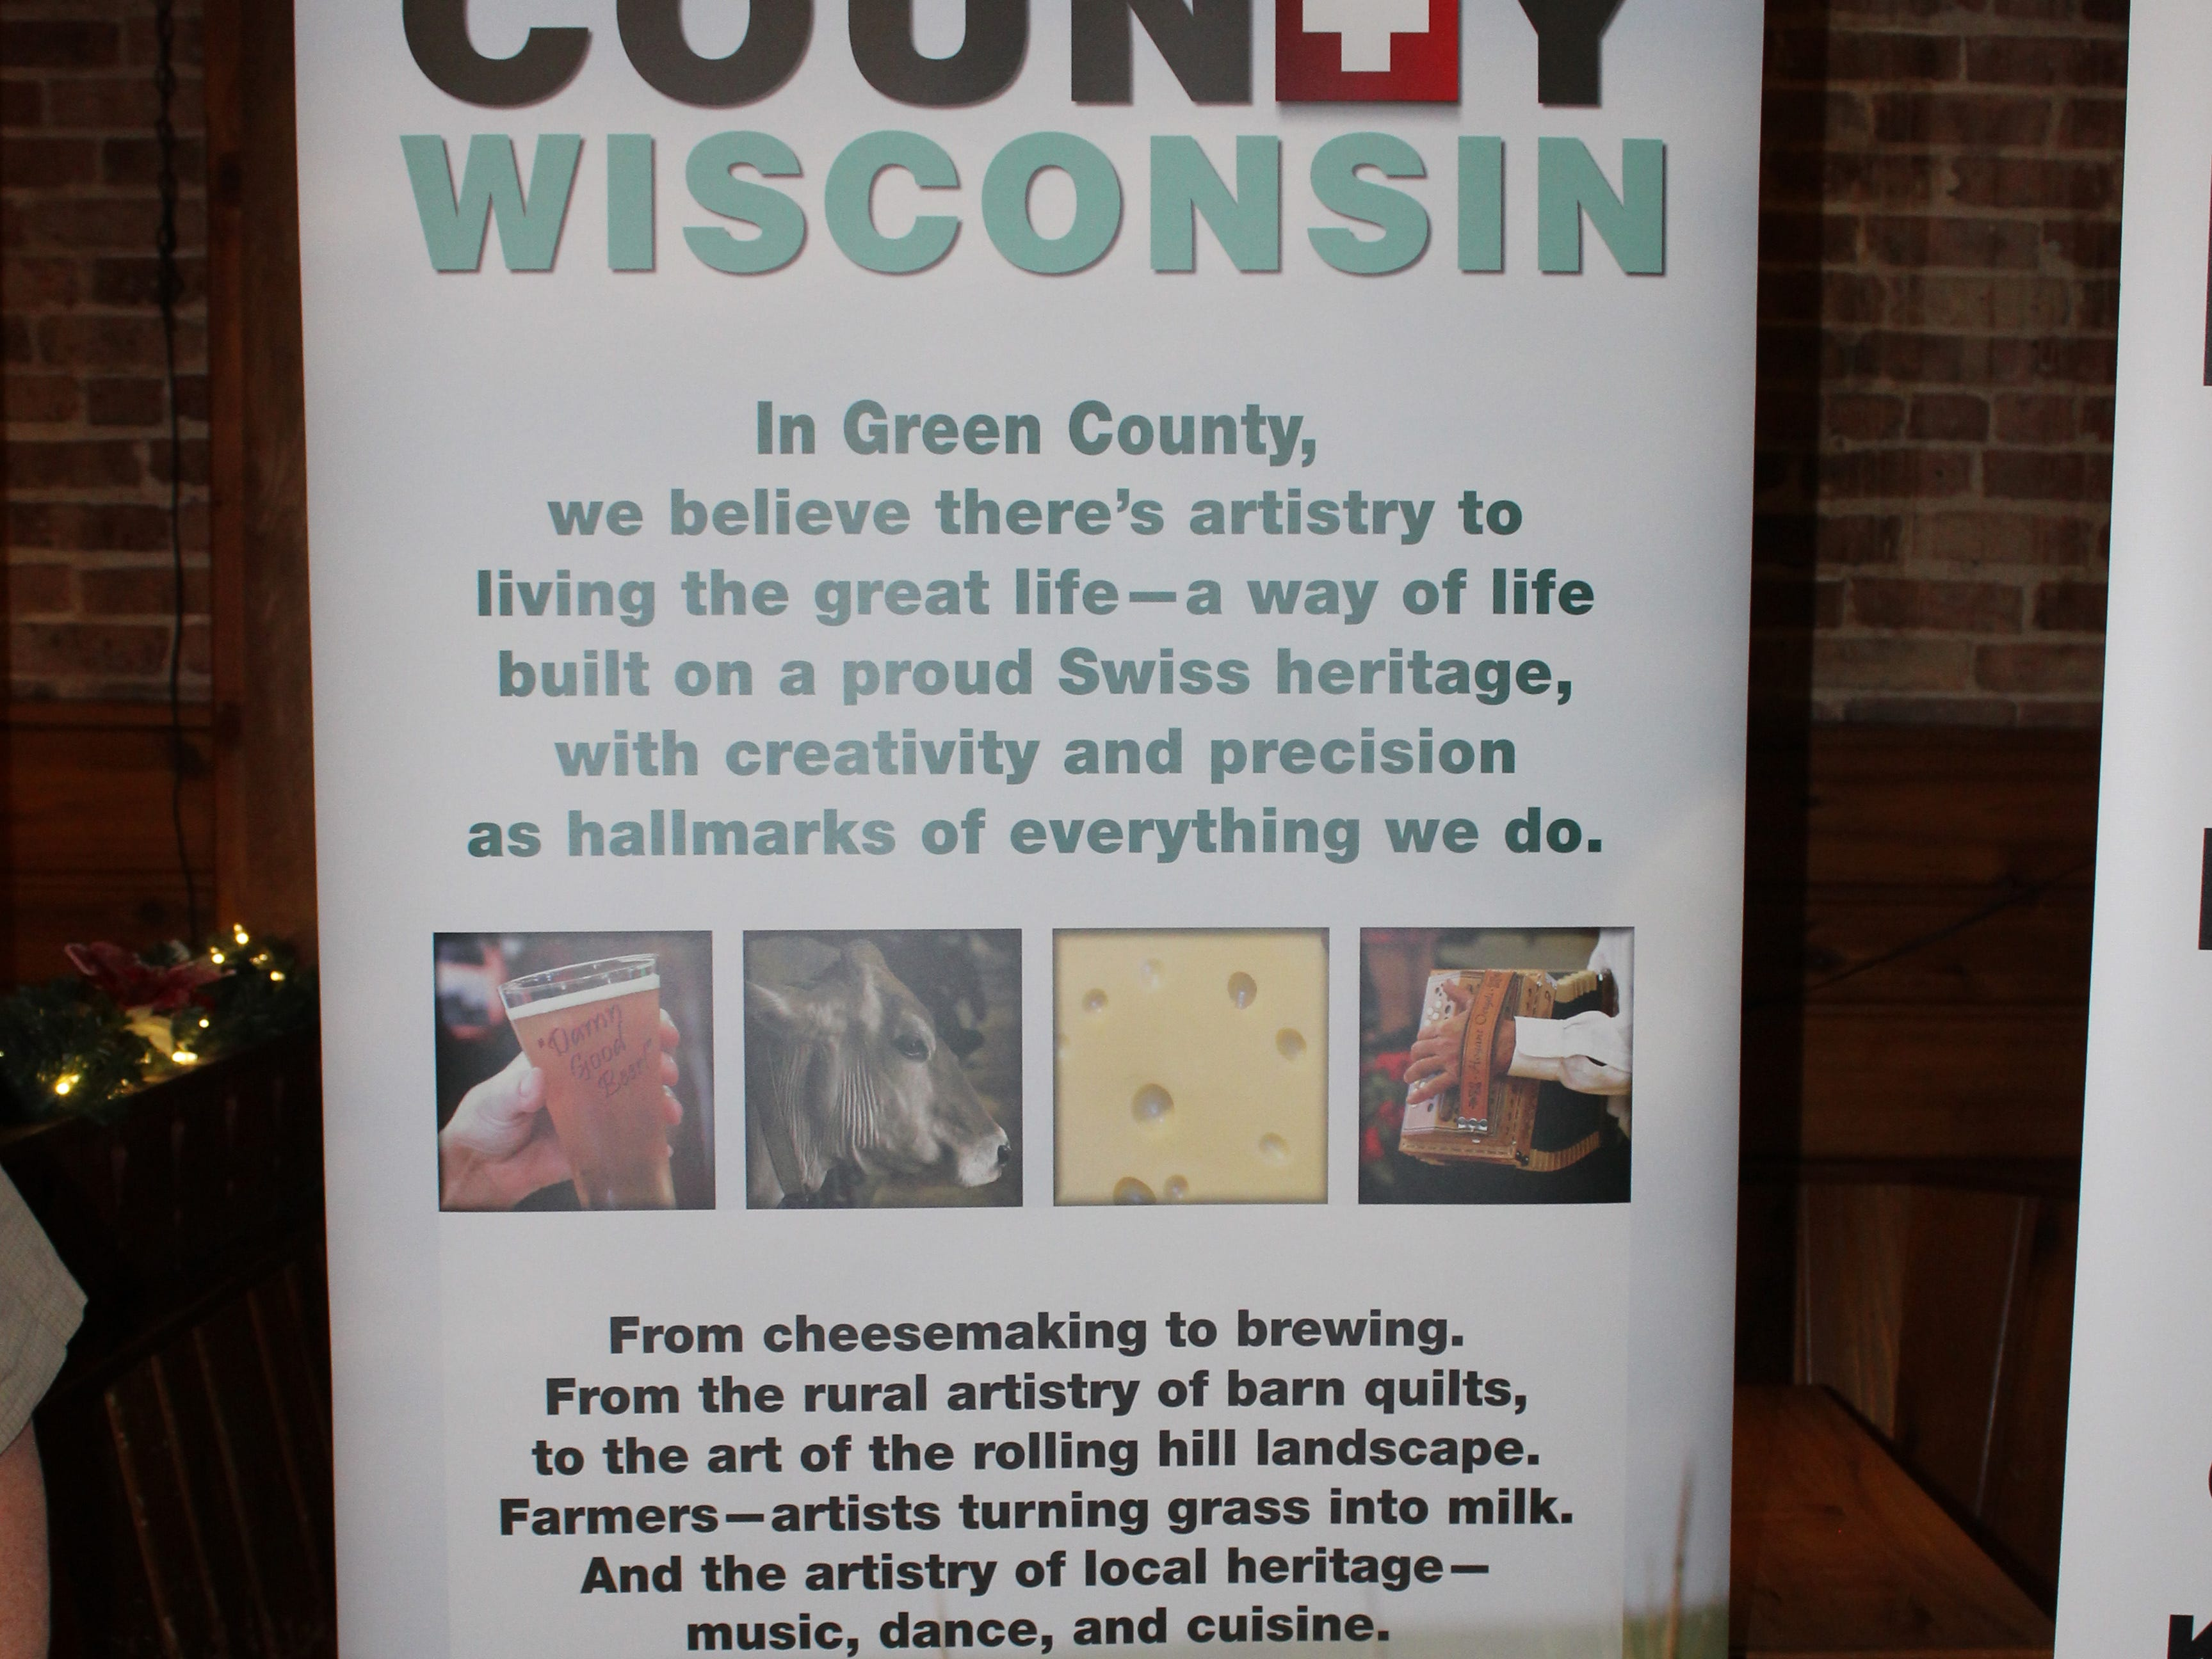 Green County is the host of this year's Alice in Dairyland interview and finals activities.